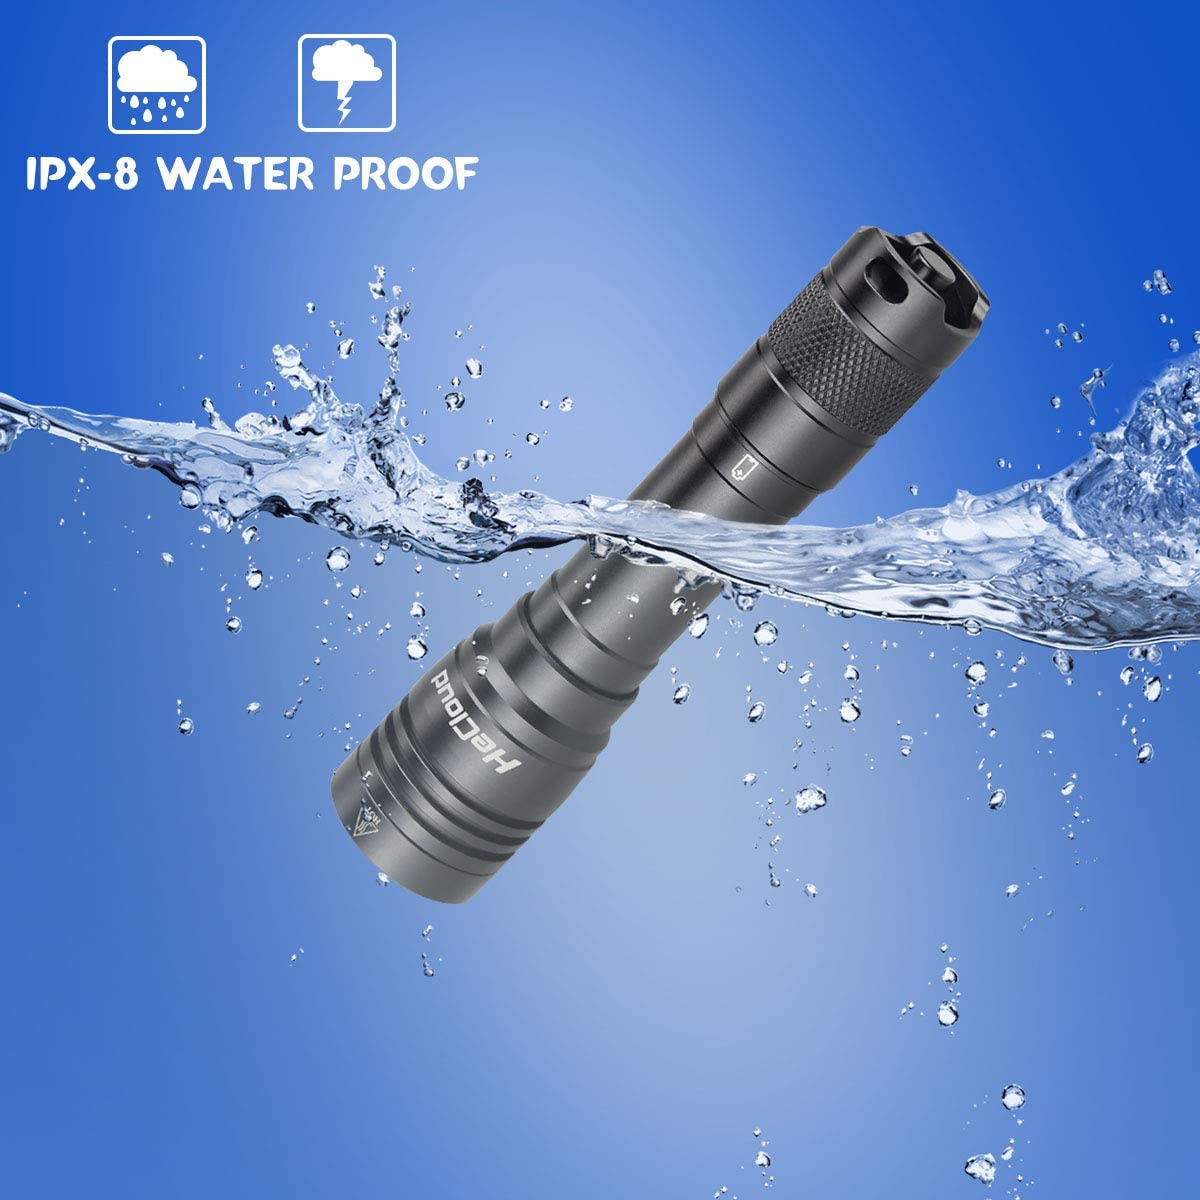 Home Use Land HECLOUD IPX8 Water-Resistant Waterproof Flashlight Professional Scuba Diving Light with Rechargeable Battery and USB Charger 4 Modes LED Dive Torch fit Underwater 100M